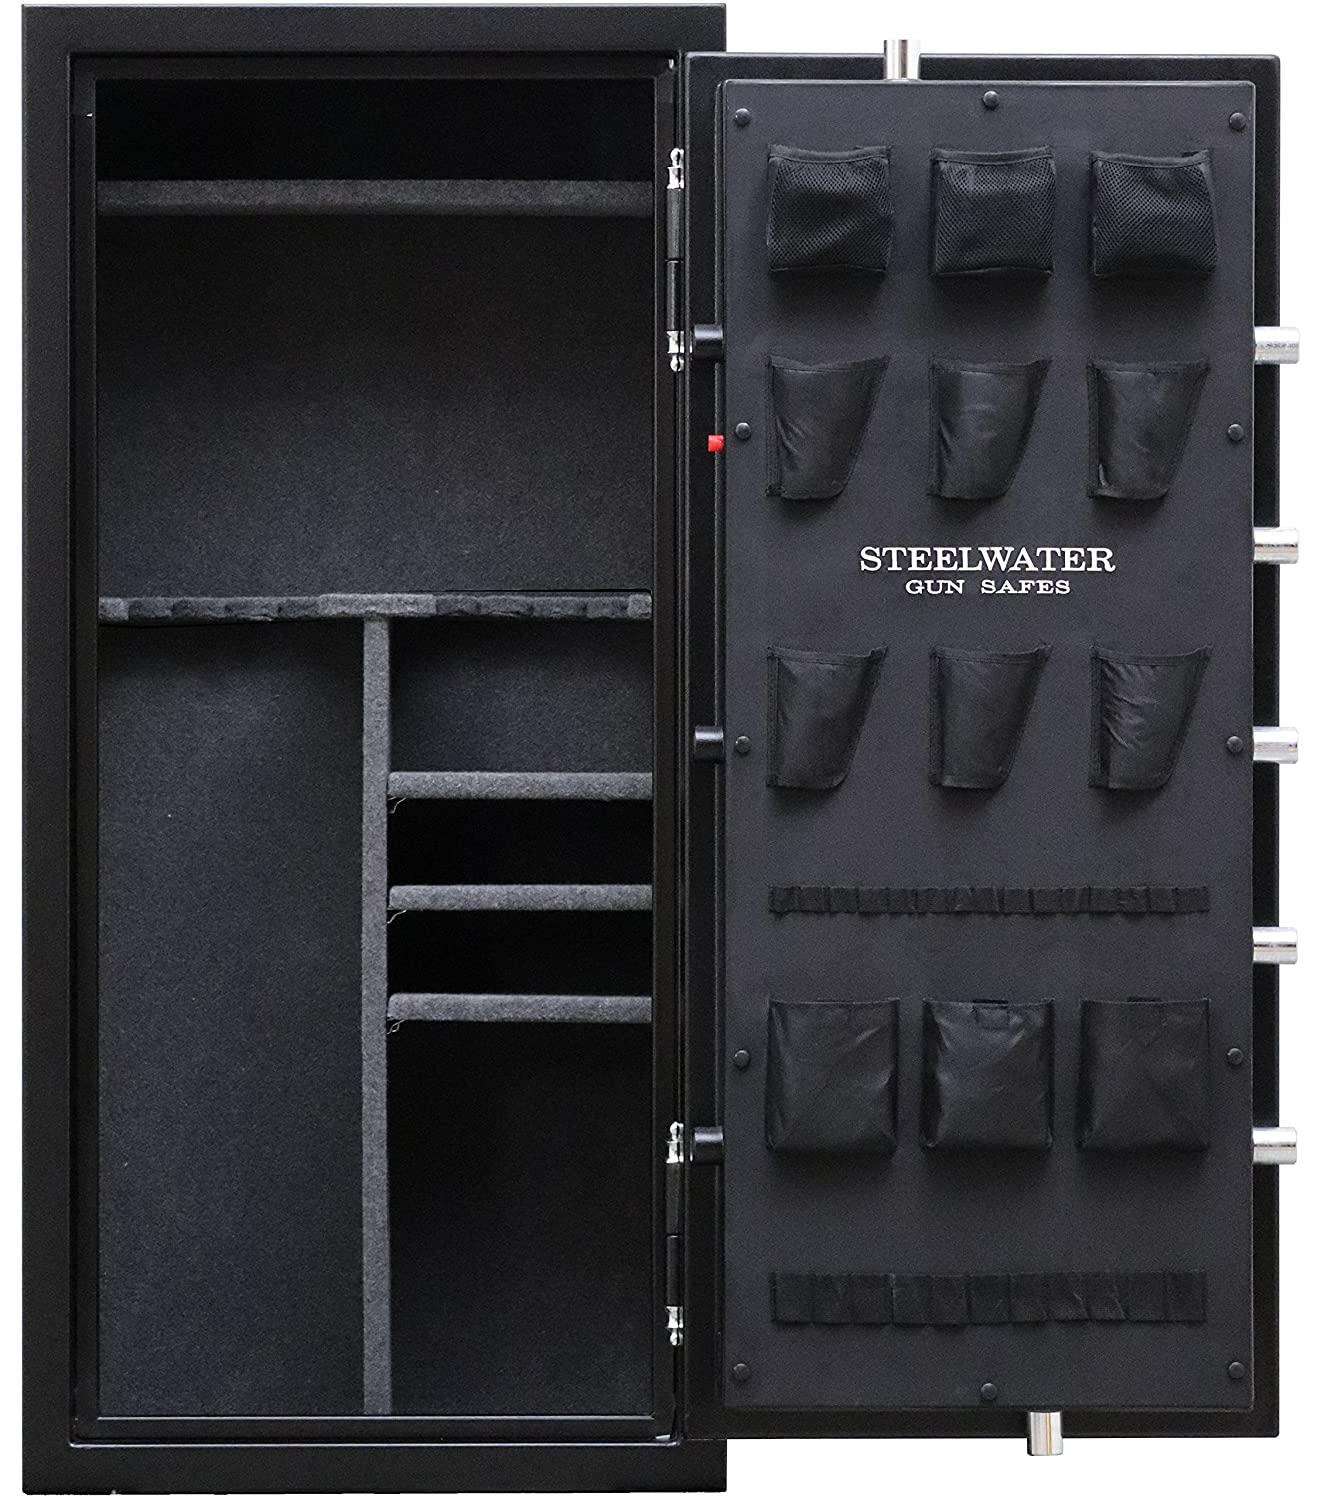 Steelwater Heavy Duty 20 Long Gun safe open